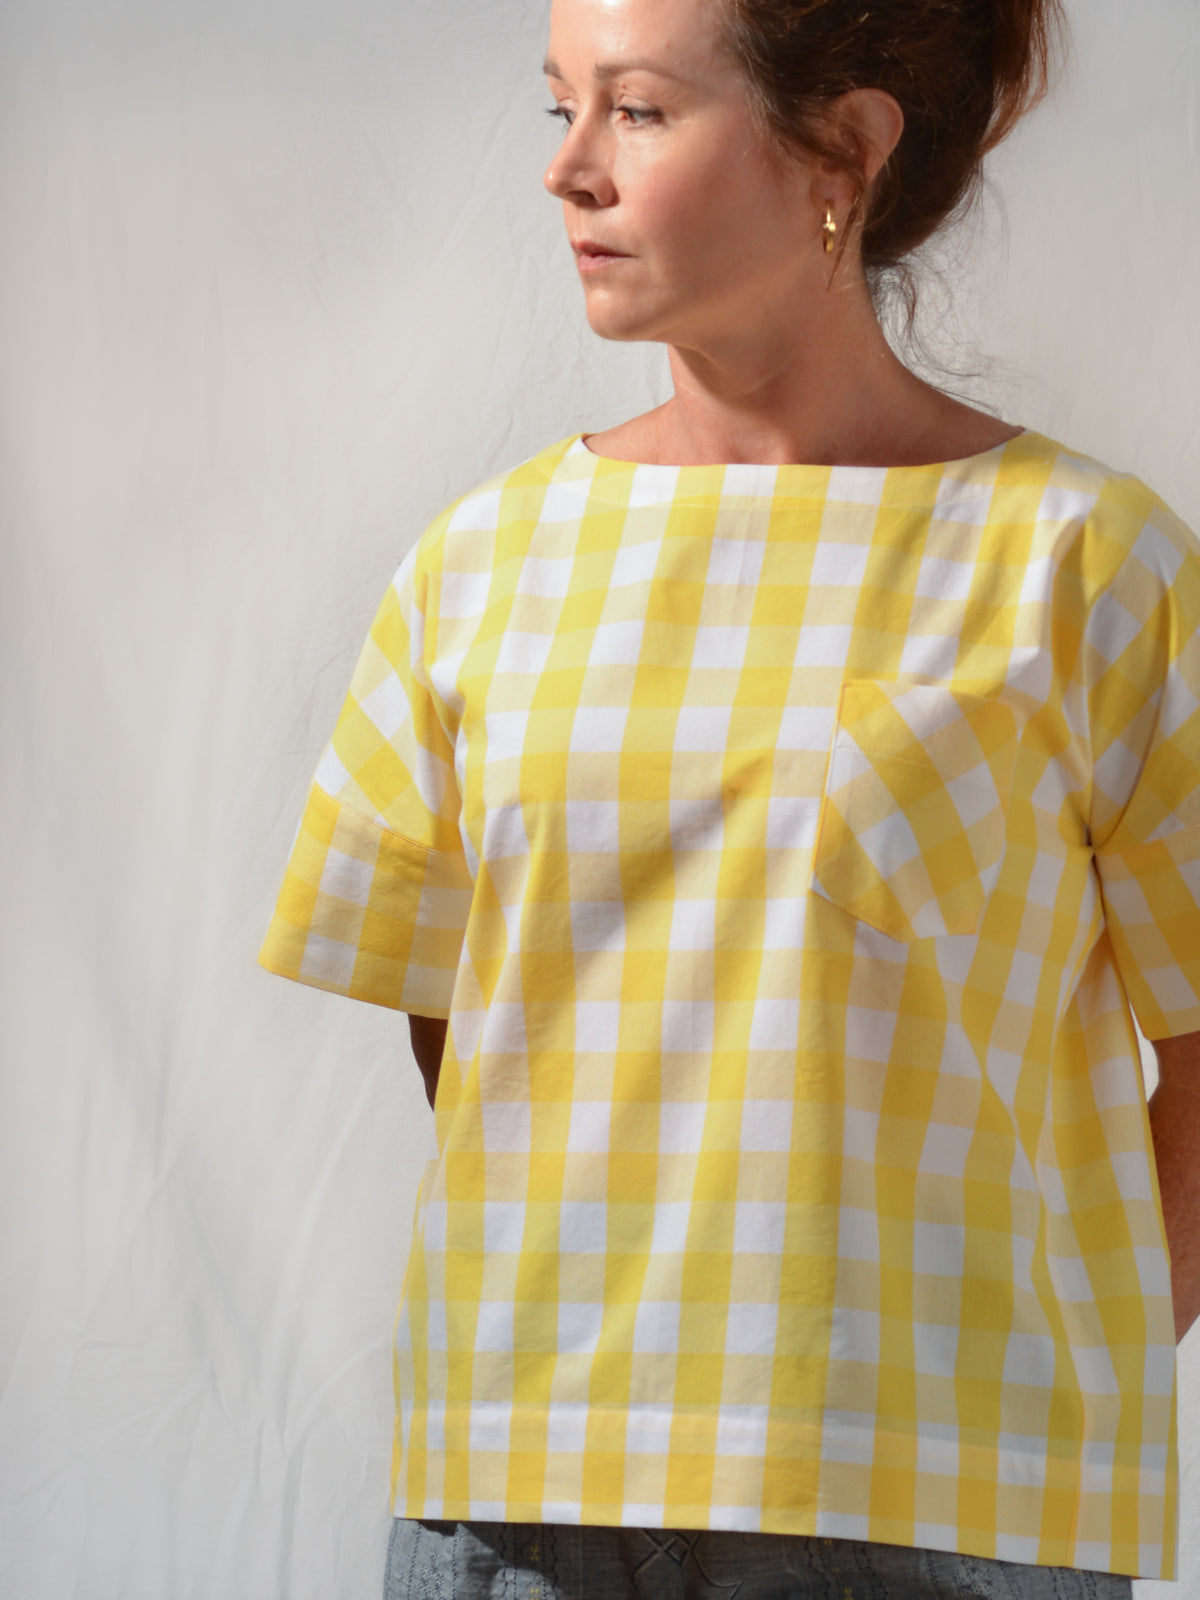 Mickie Short Sleeve Gingham Check Top